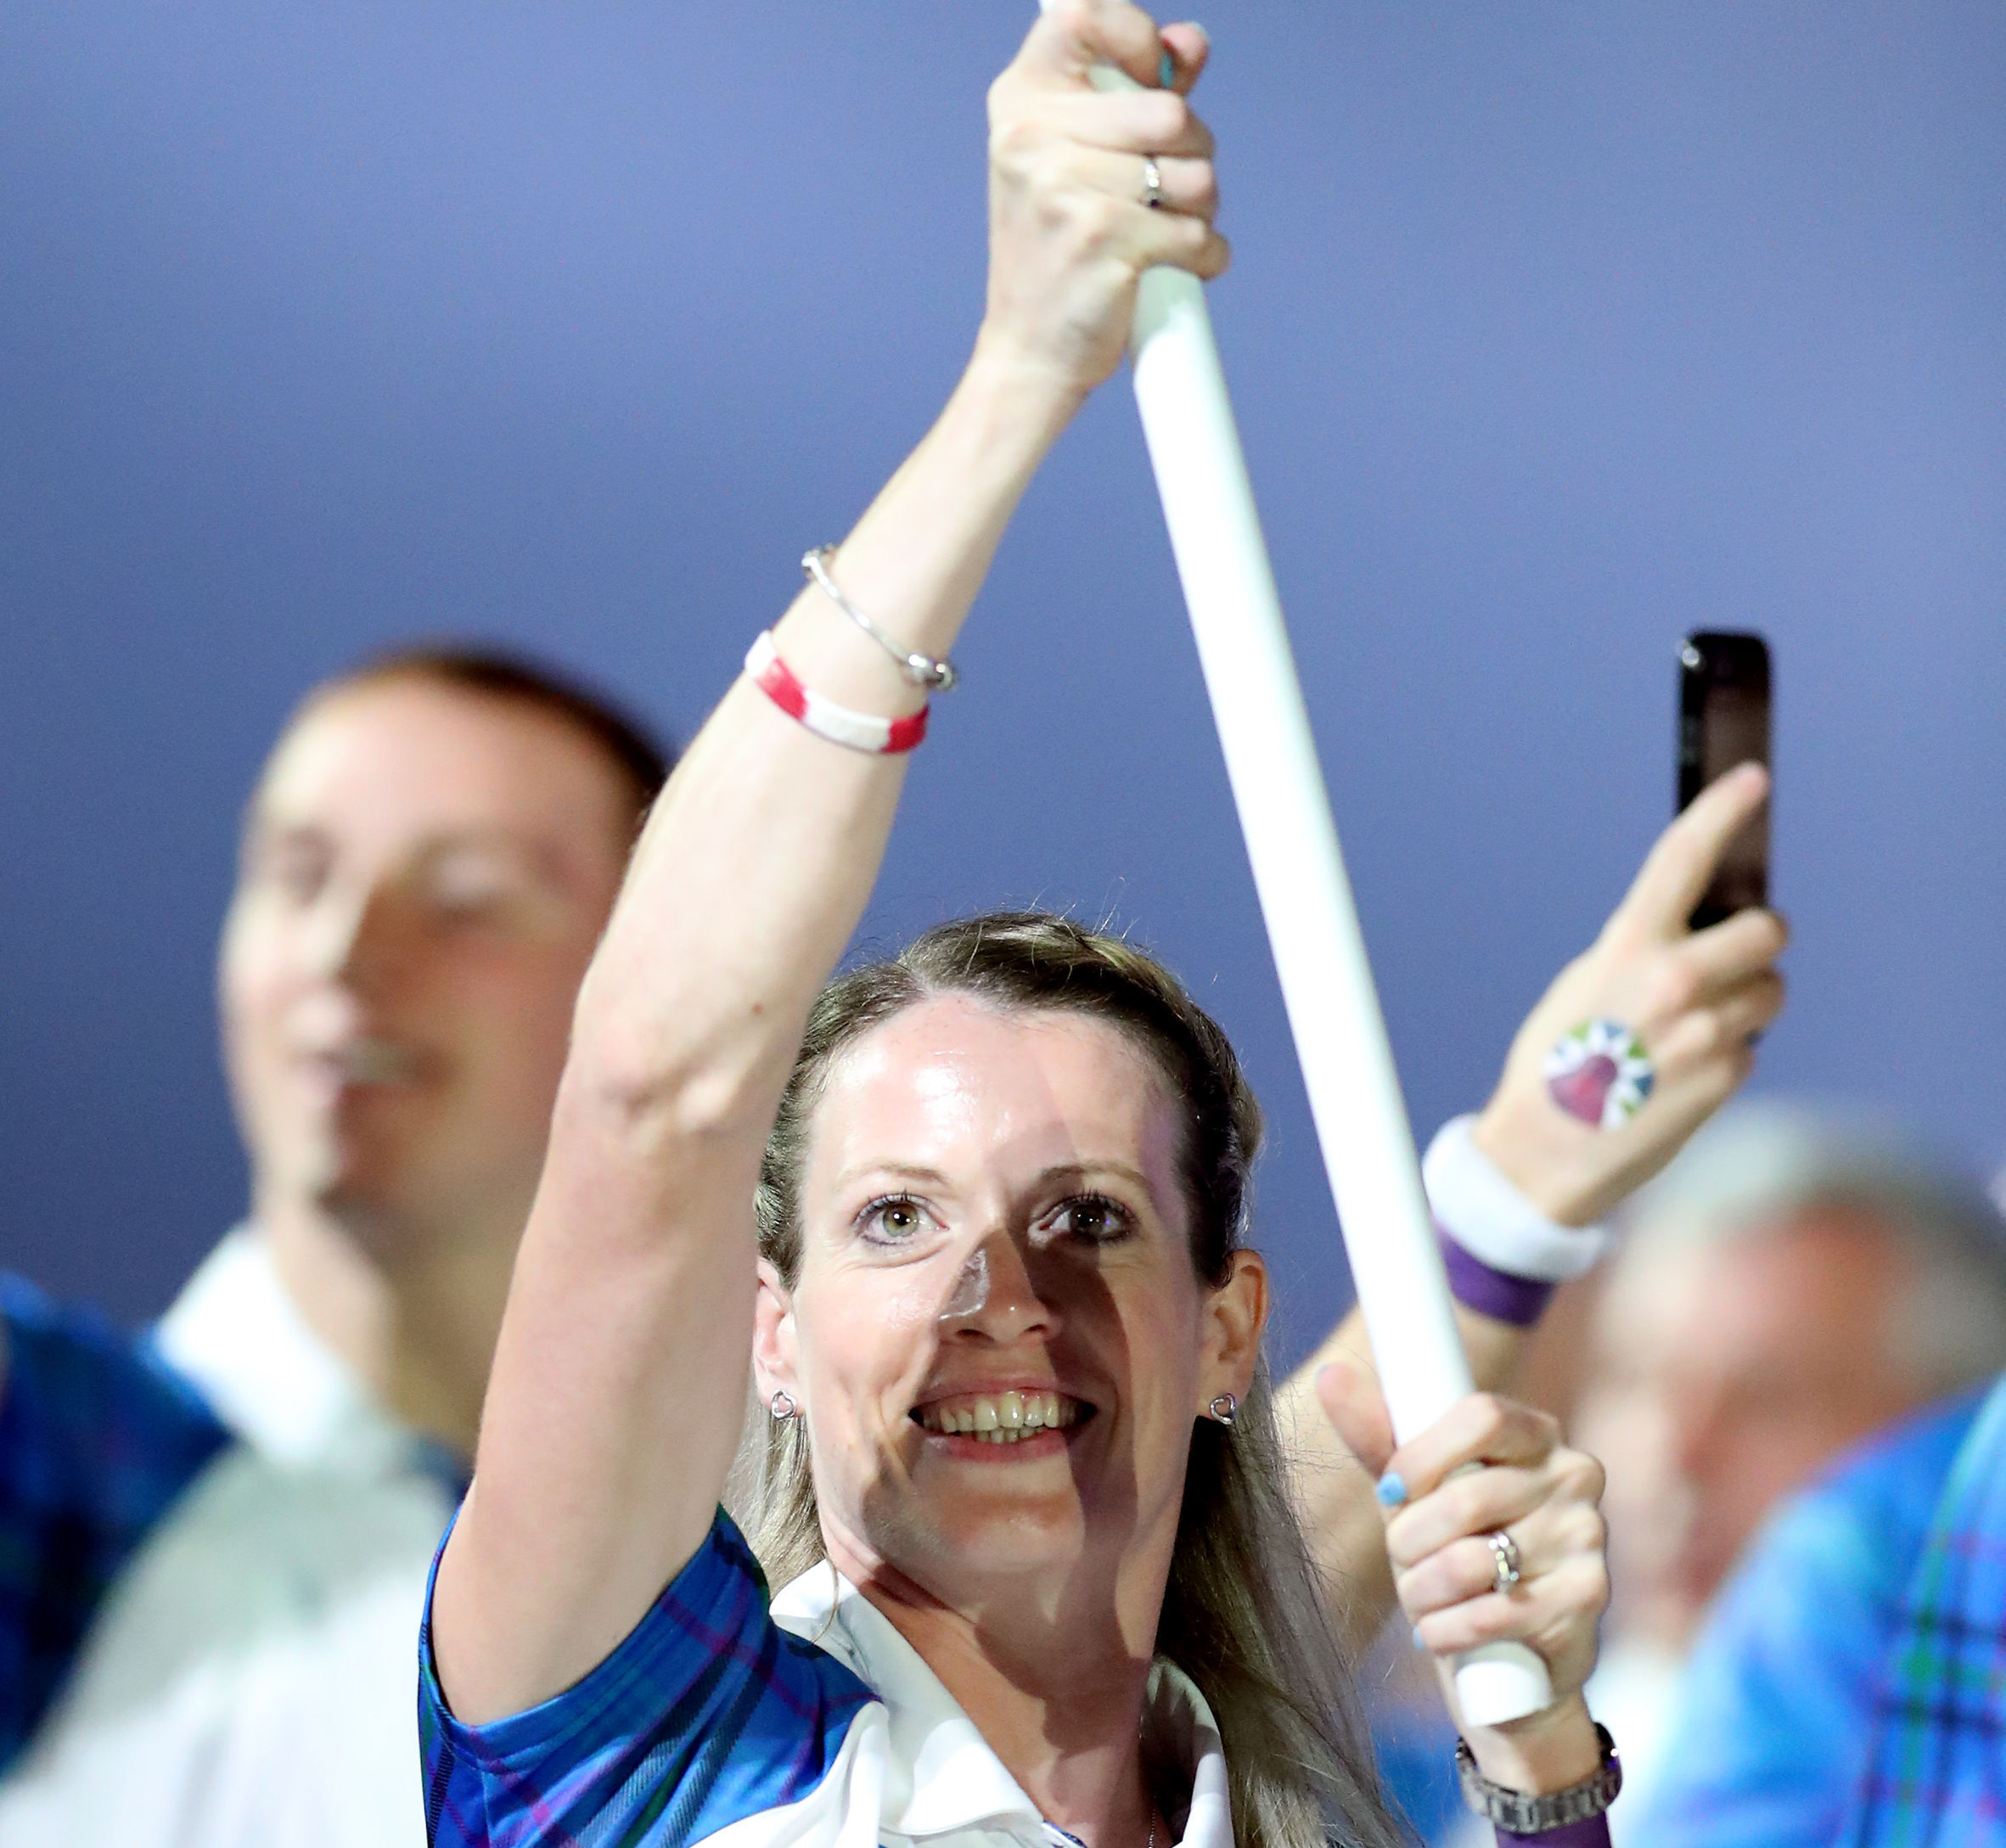 Scotland's flag bearer Eilidh Doyle leads out her team during the Opening Ceremony for the 2018 Commonwealth Games at the Carrara Stadium in the Gold Coast, Australia. PRESS ASSOCIATION Photo. Picture date: Wednesday April 4, 2018. See PA story COMMON